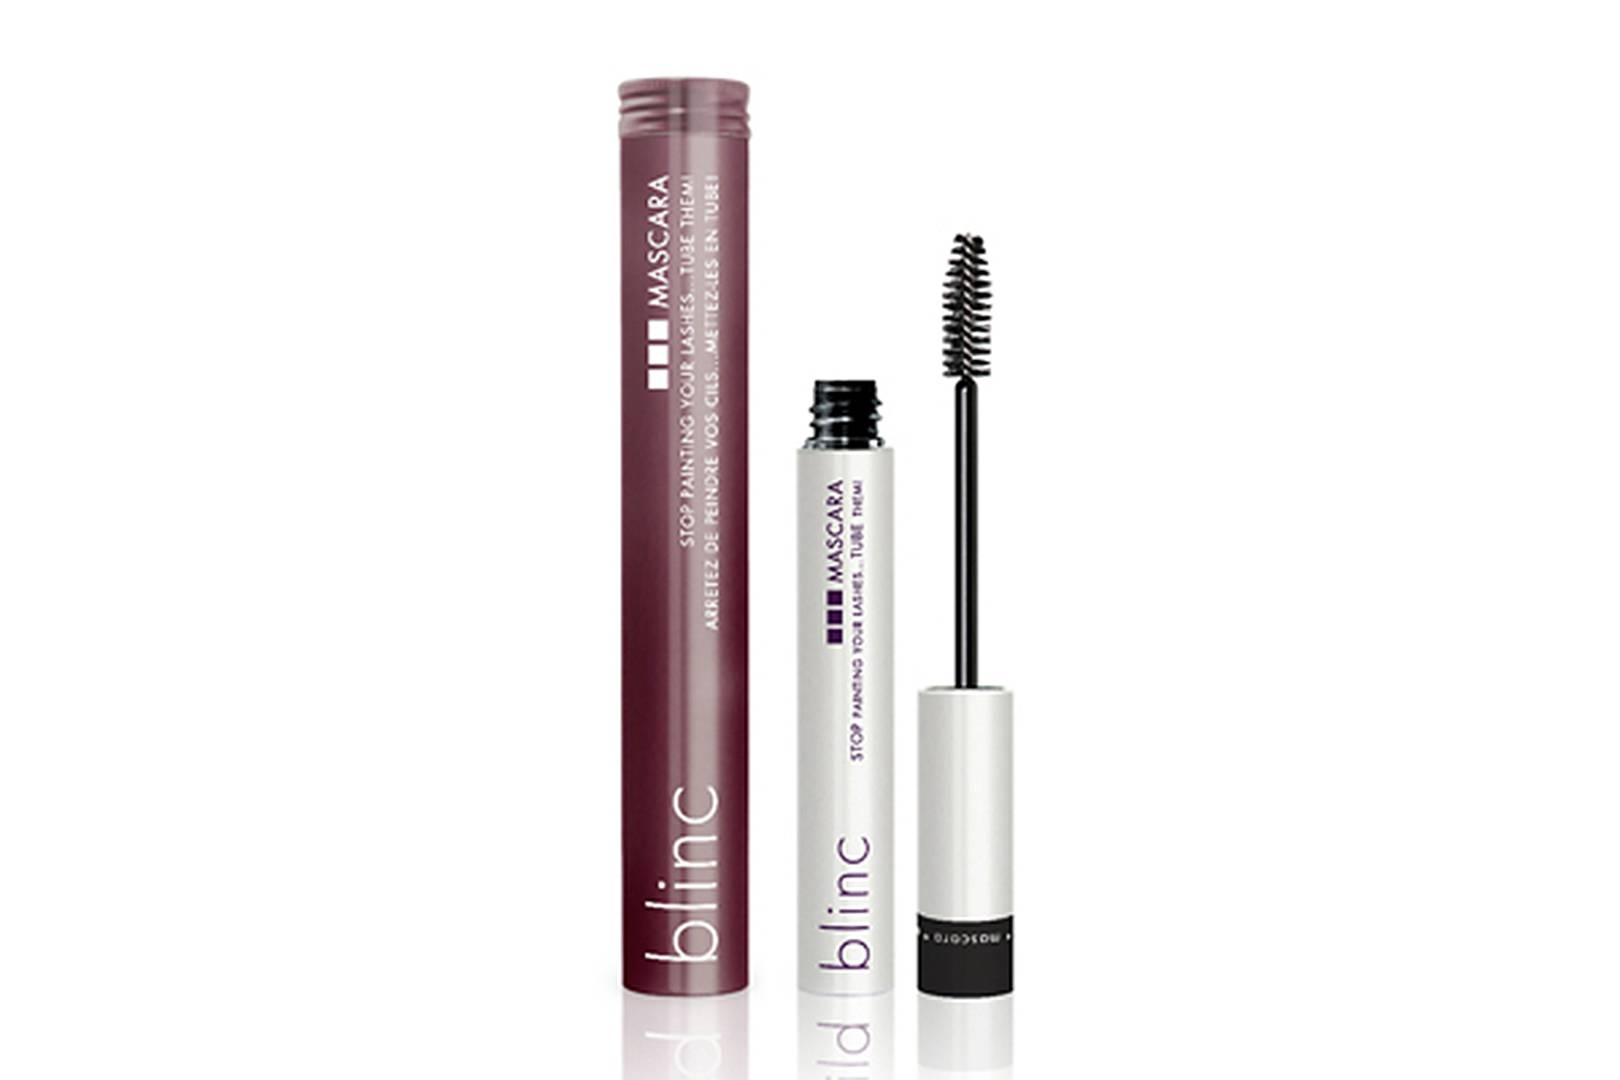 Best Tubing Mascaras: What They Are And What Ones To Buy